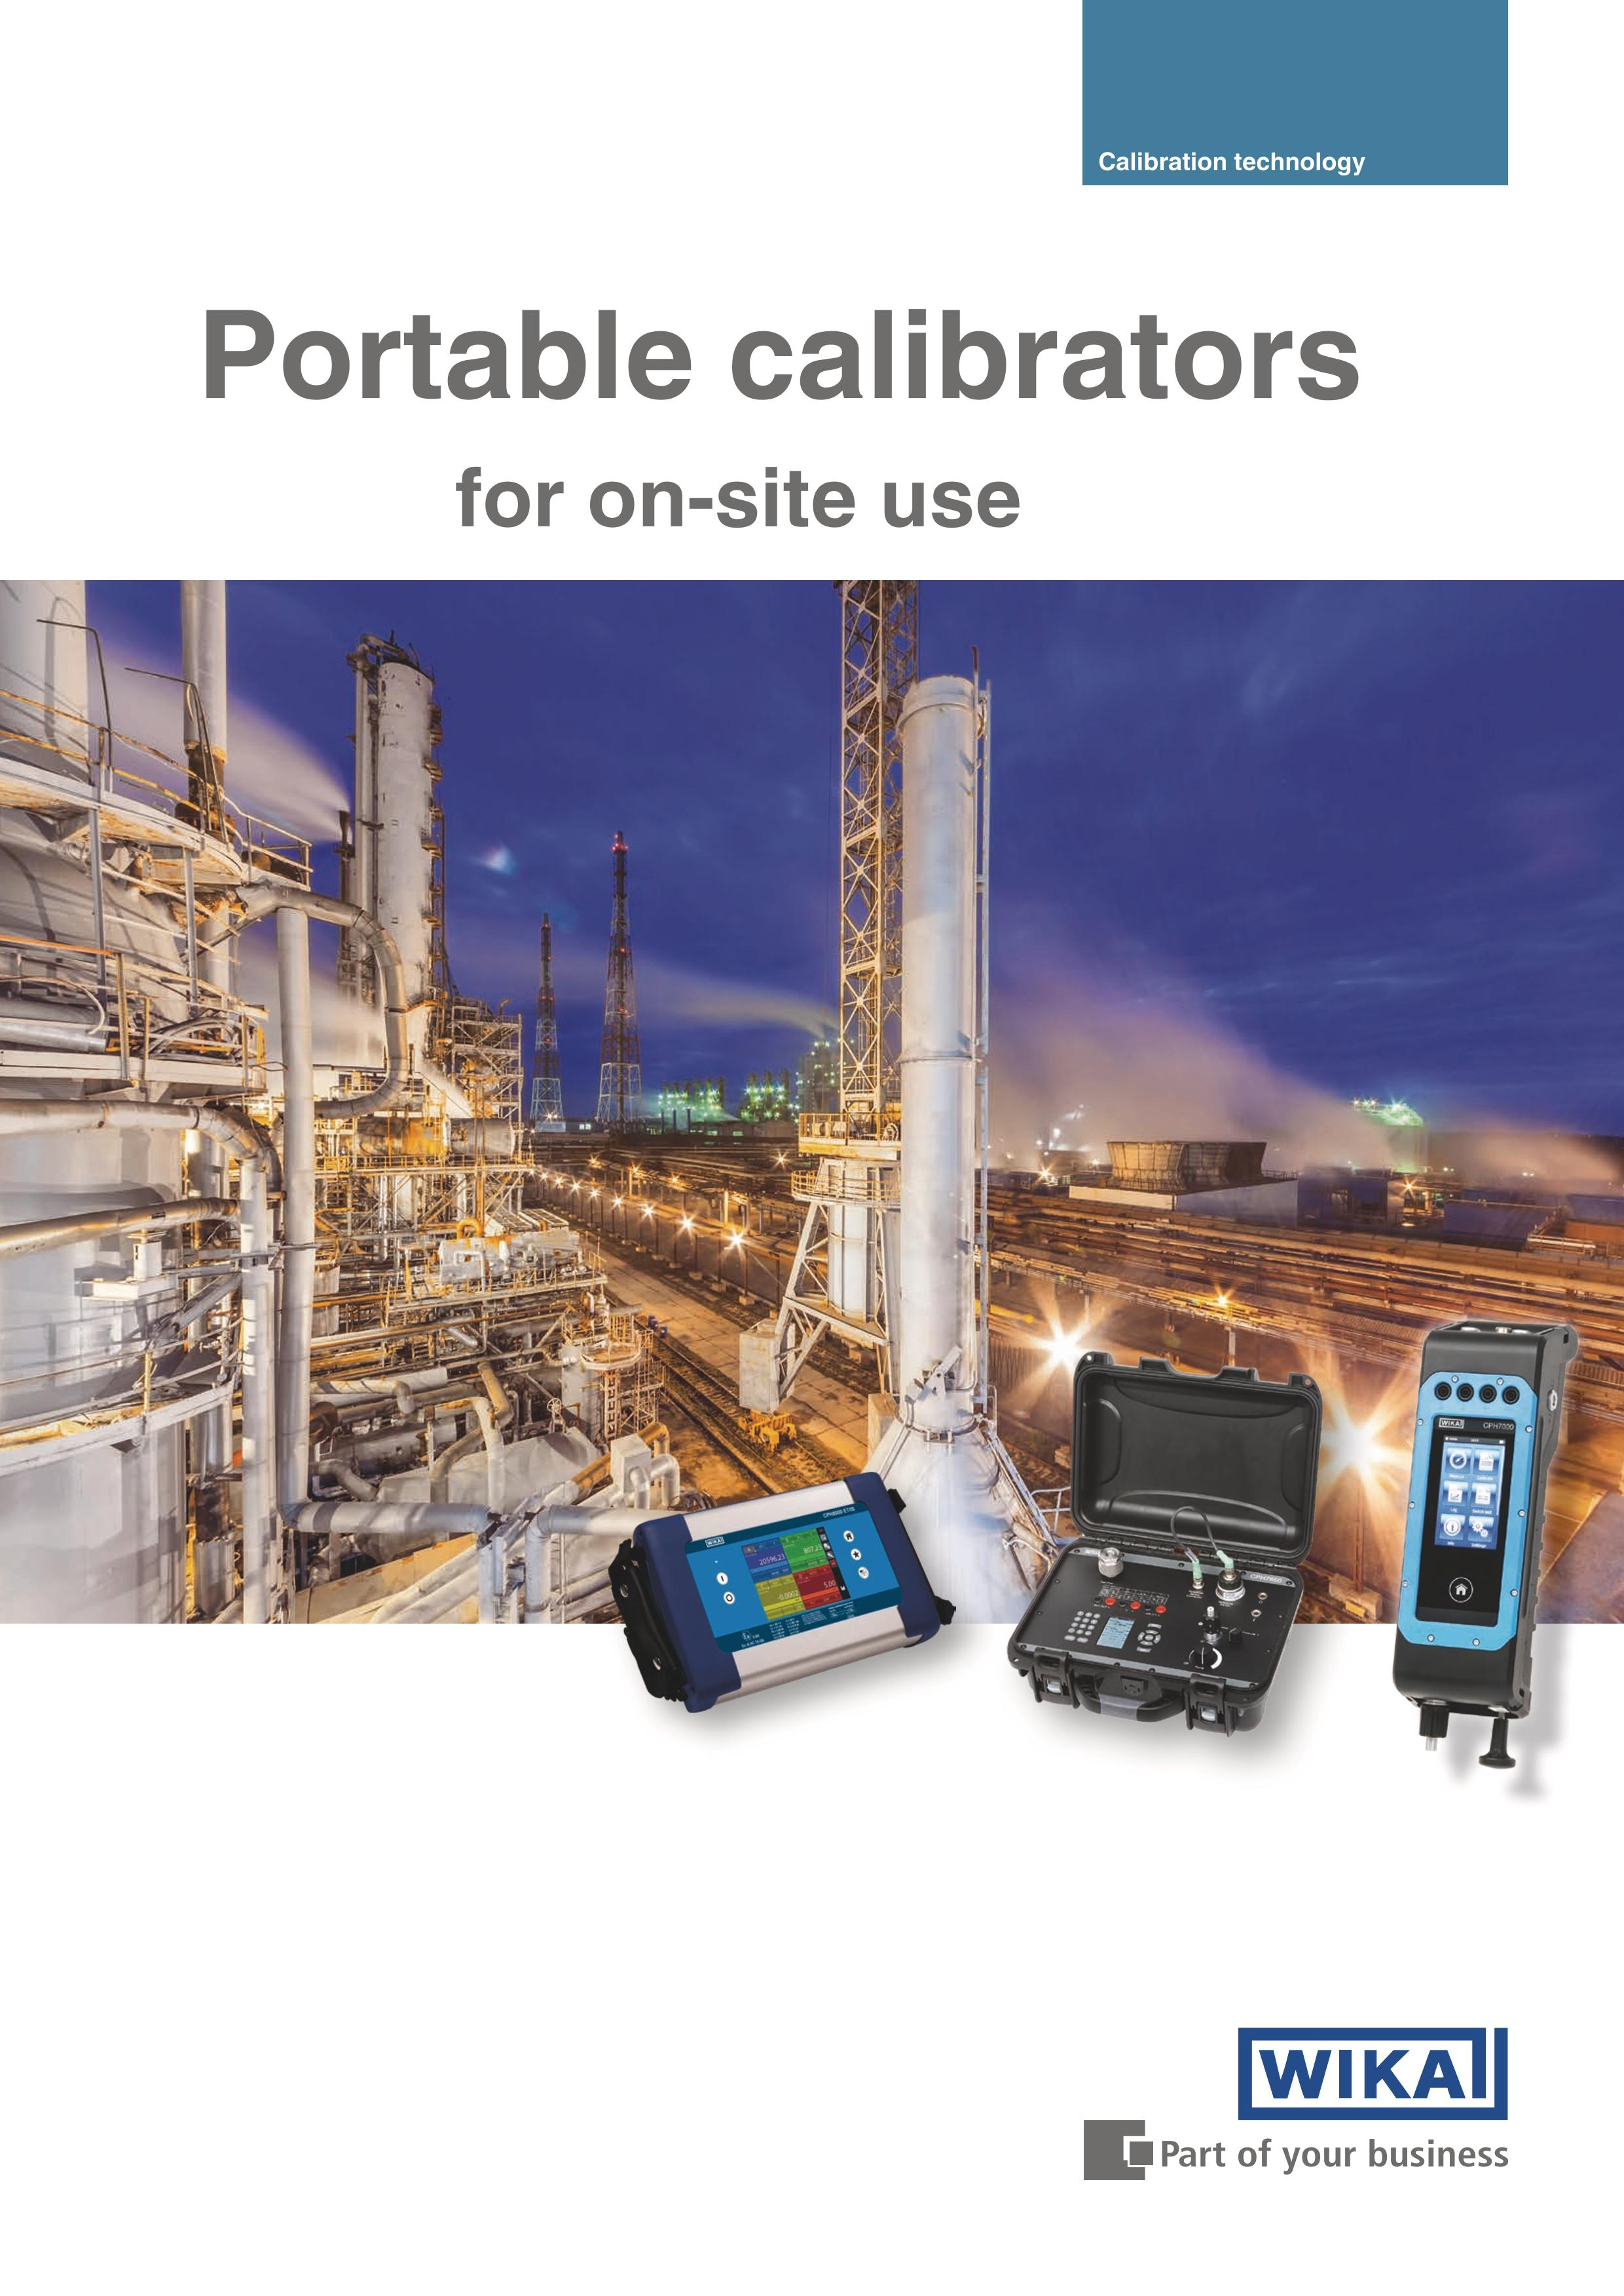 Portable calibrators for on-site use